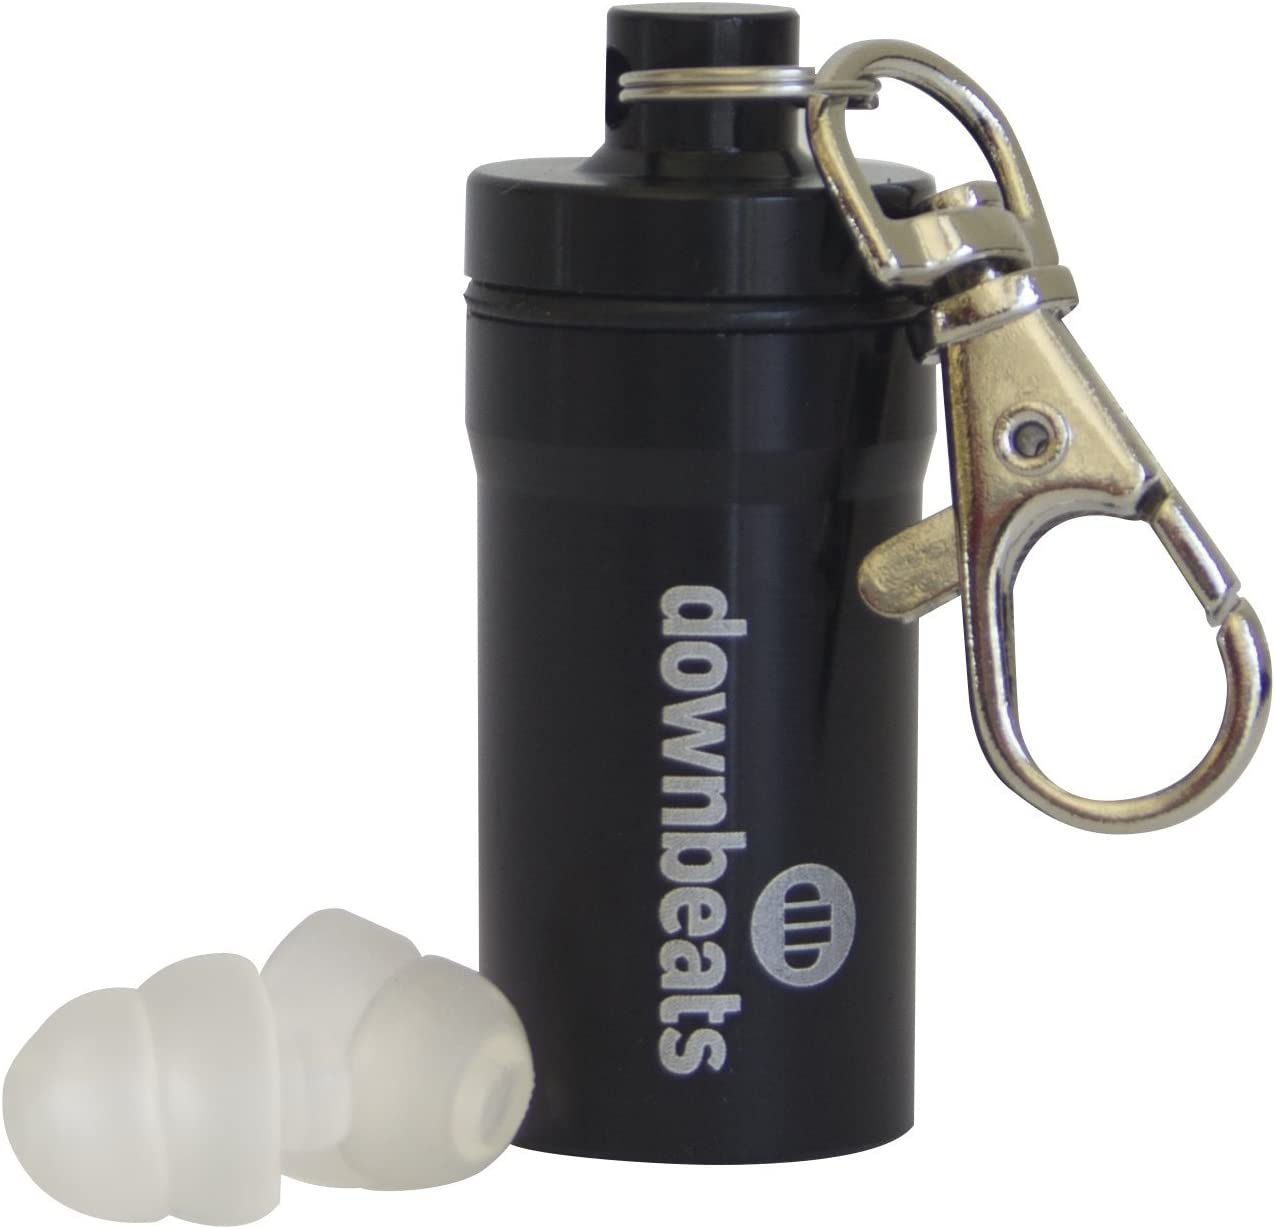 DownBeats Reusable High Fidelity Hearing Protection: Ear Plugs for Concerts, Music, and Musicians